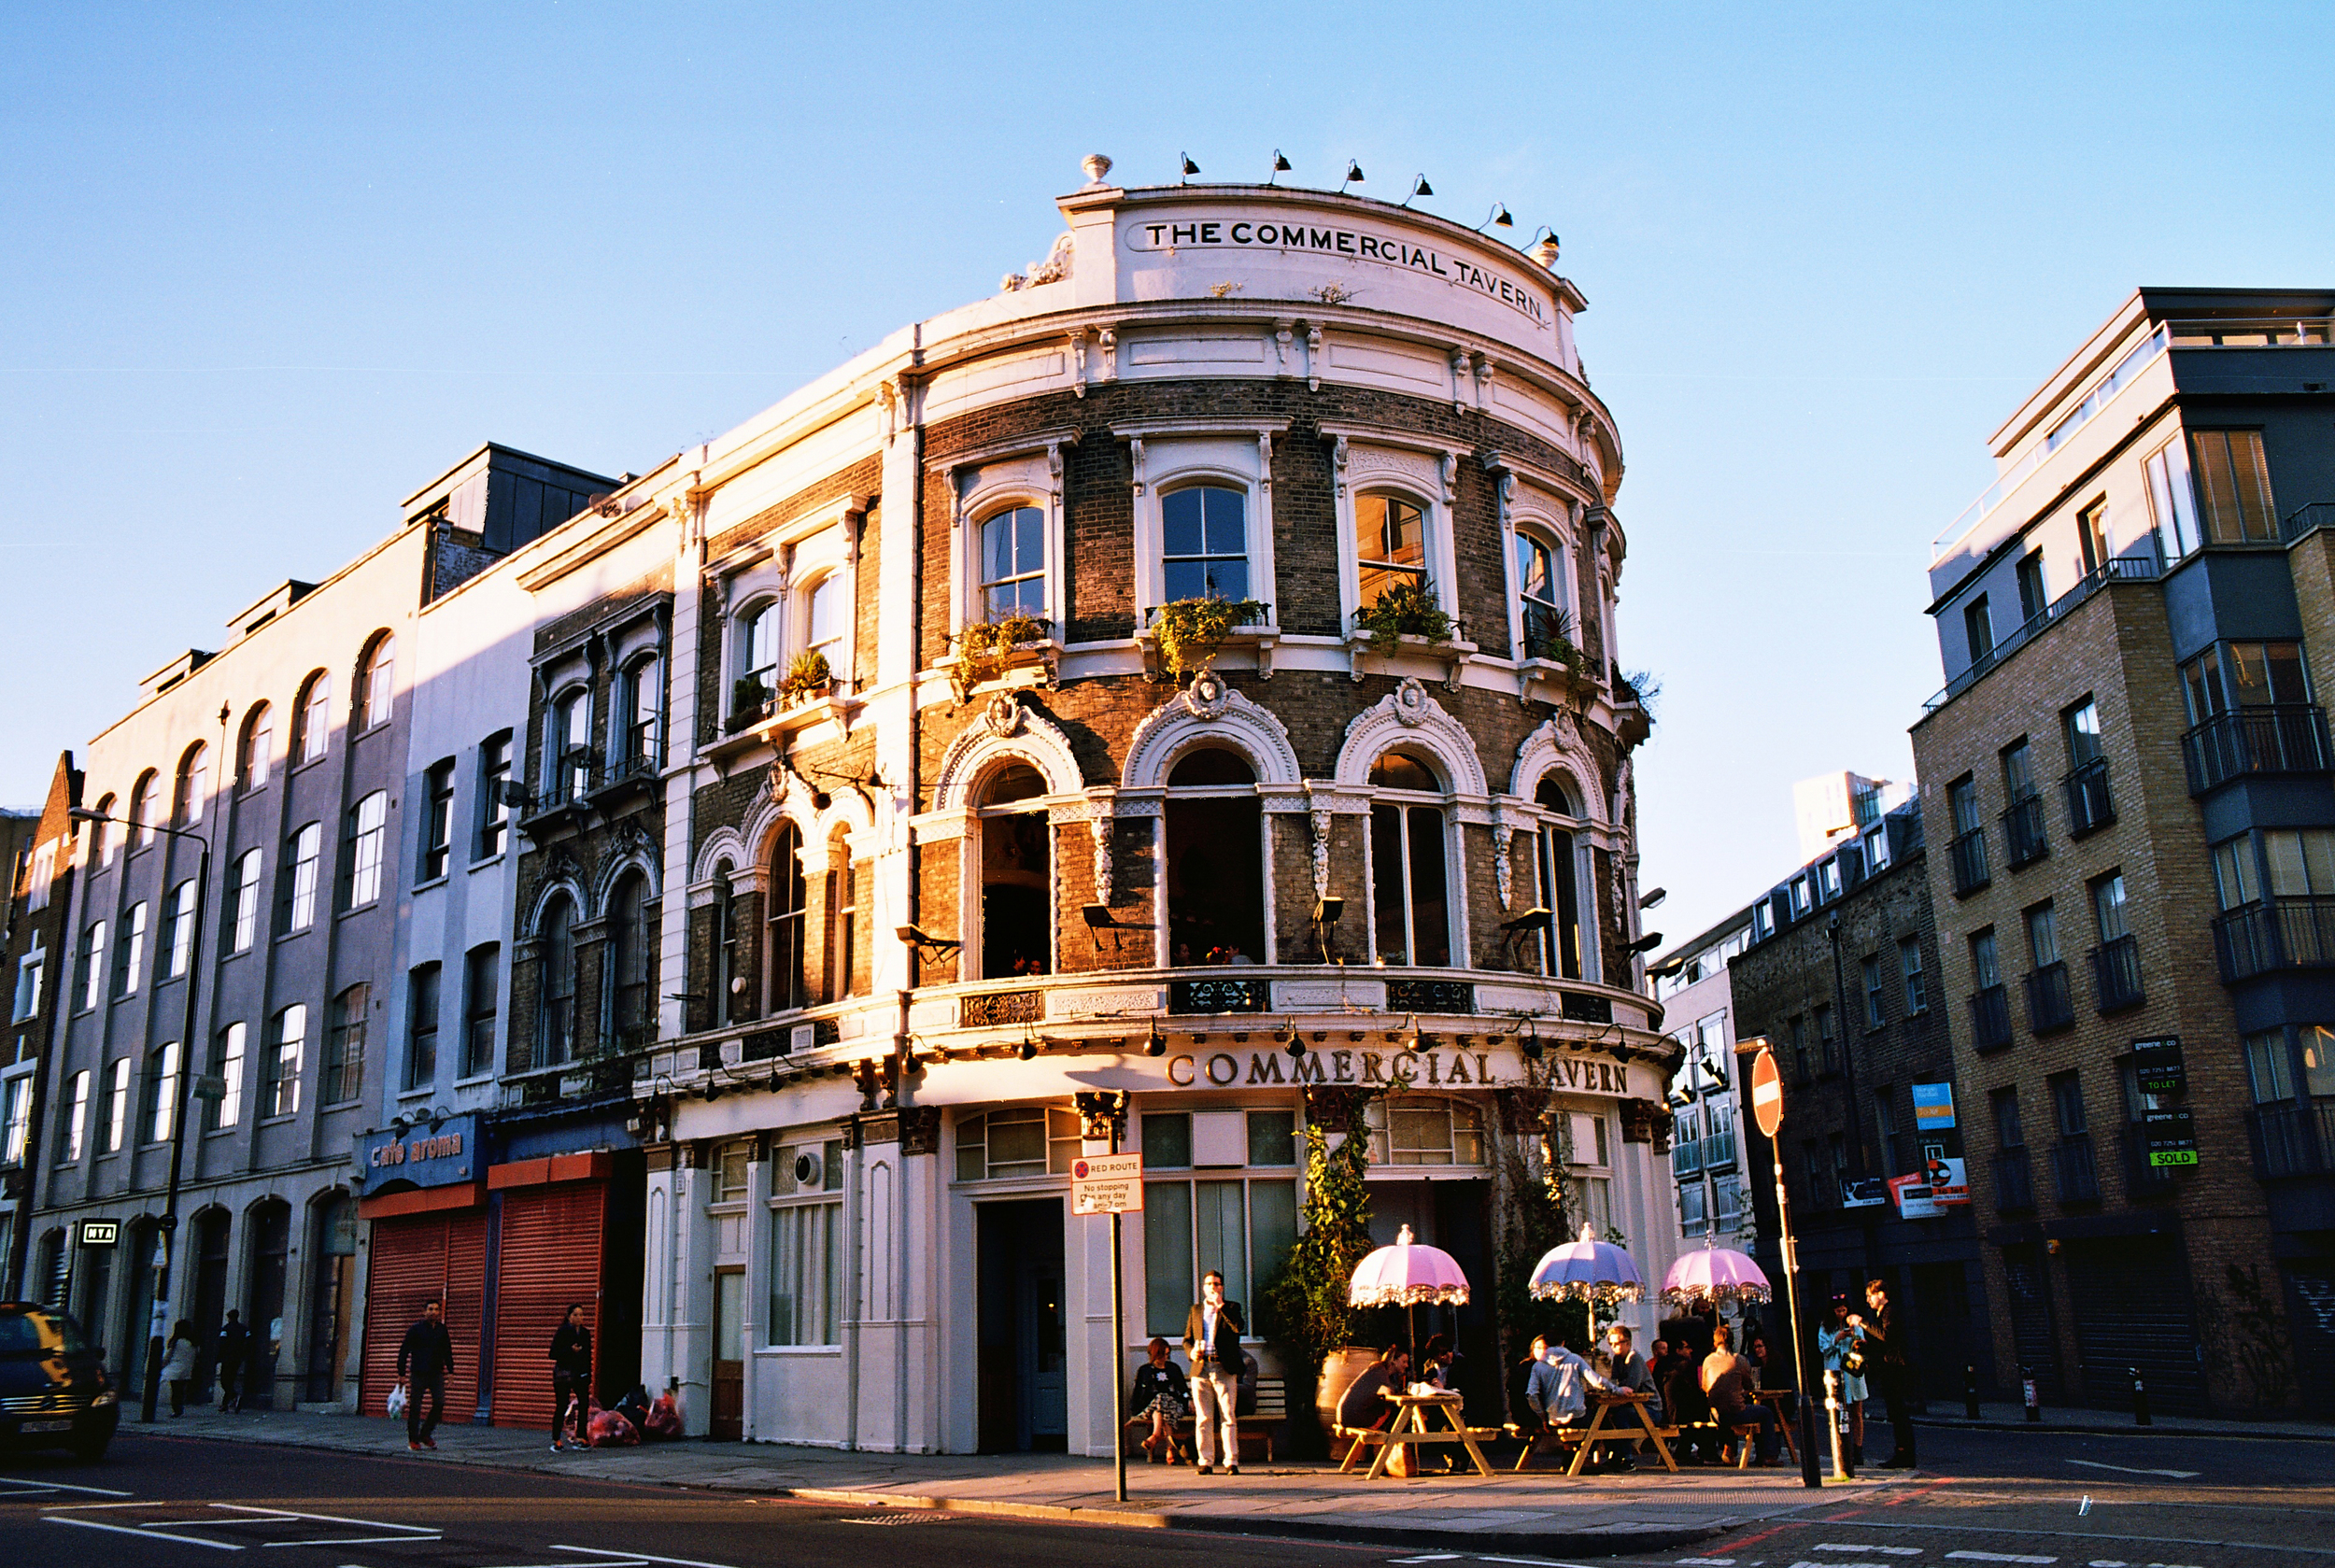 The Commercial Tavern, Shoreditch